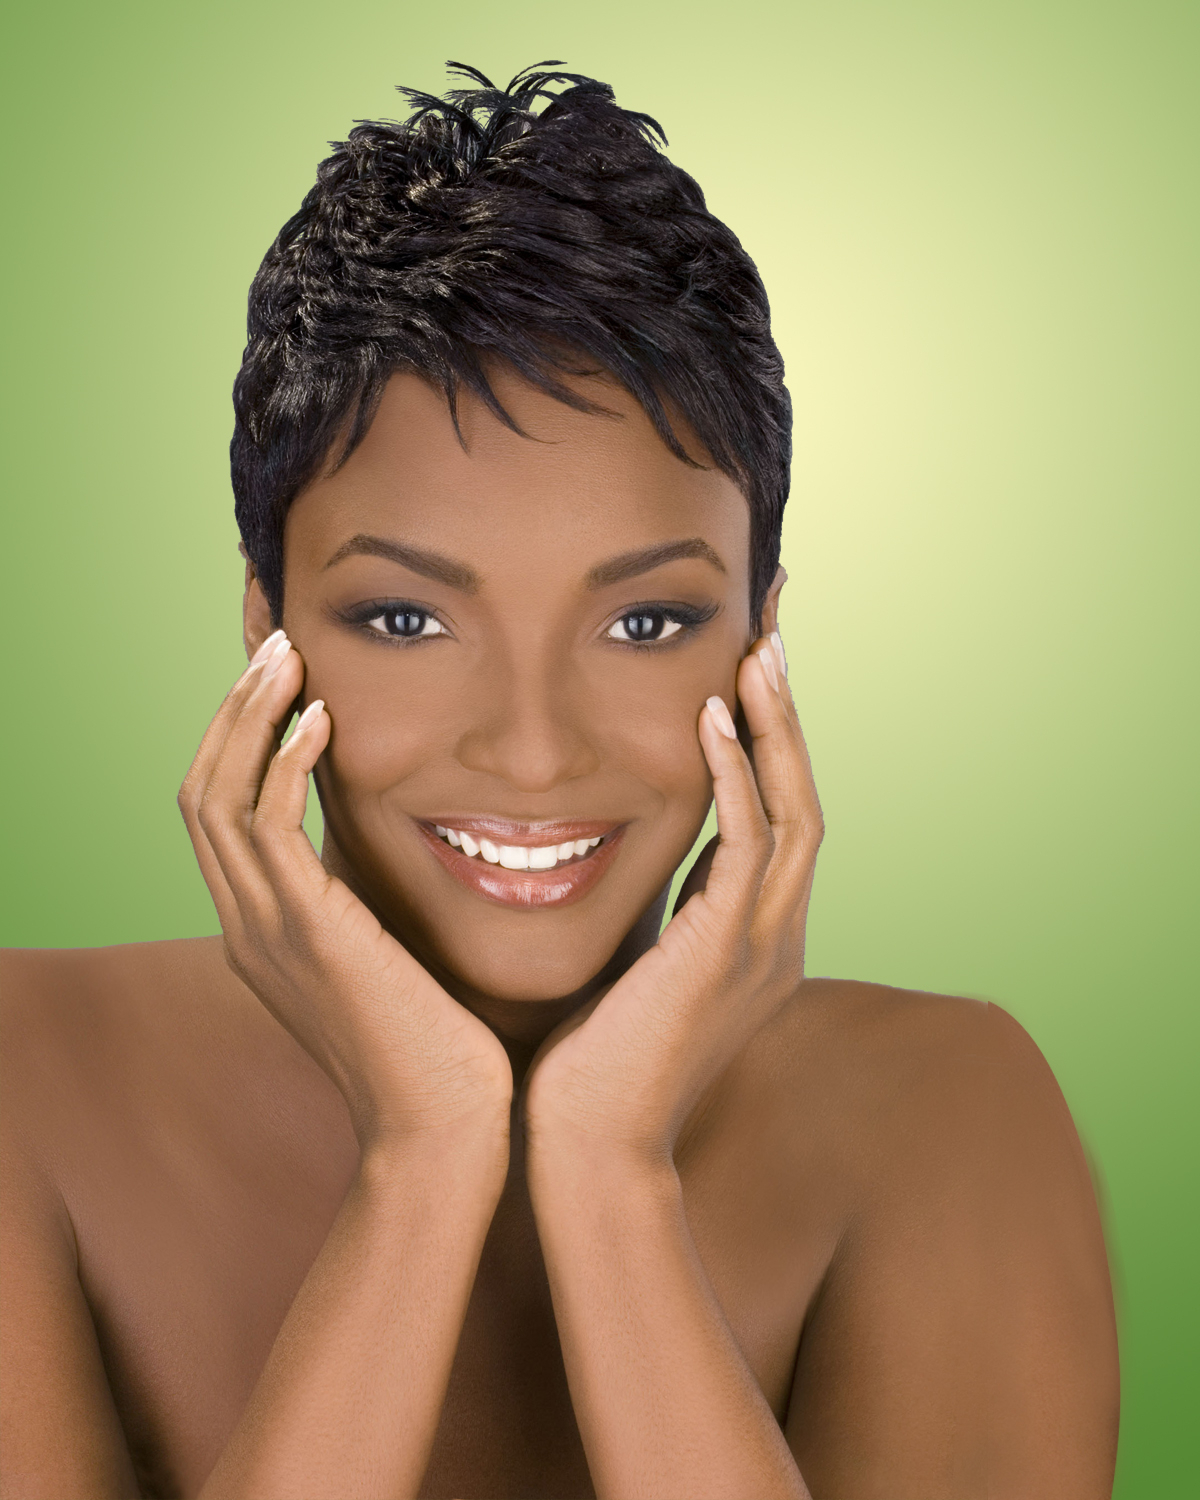 Splendid Short Curly Colored Hairstyle Black Women Short Hairstyles Inside Short Haircuts For Ethnic Hair (View 12 of 25)